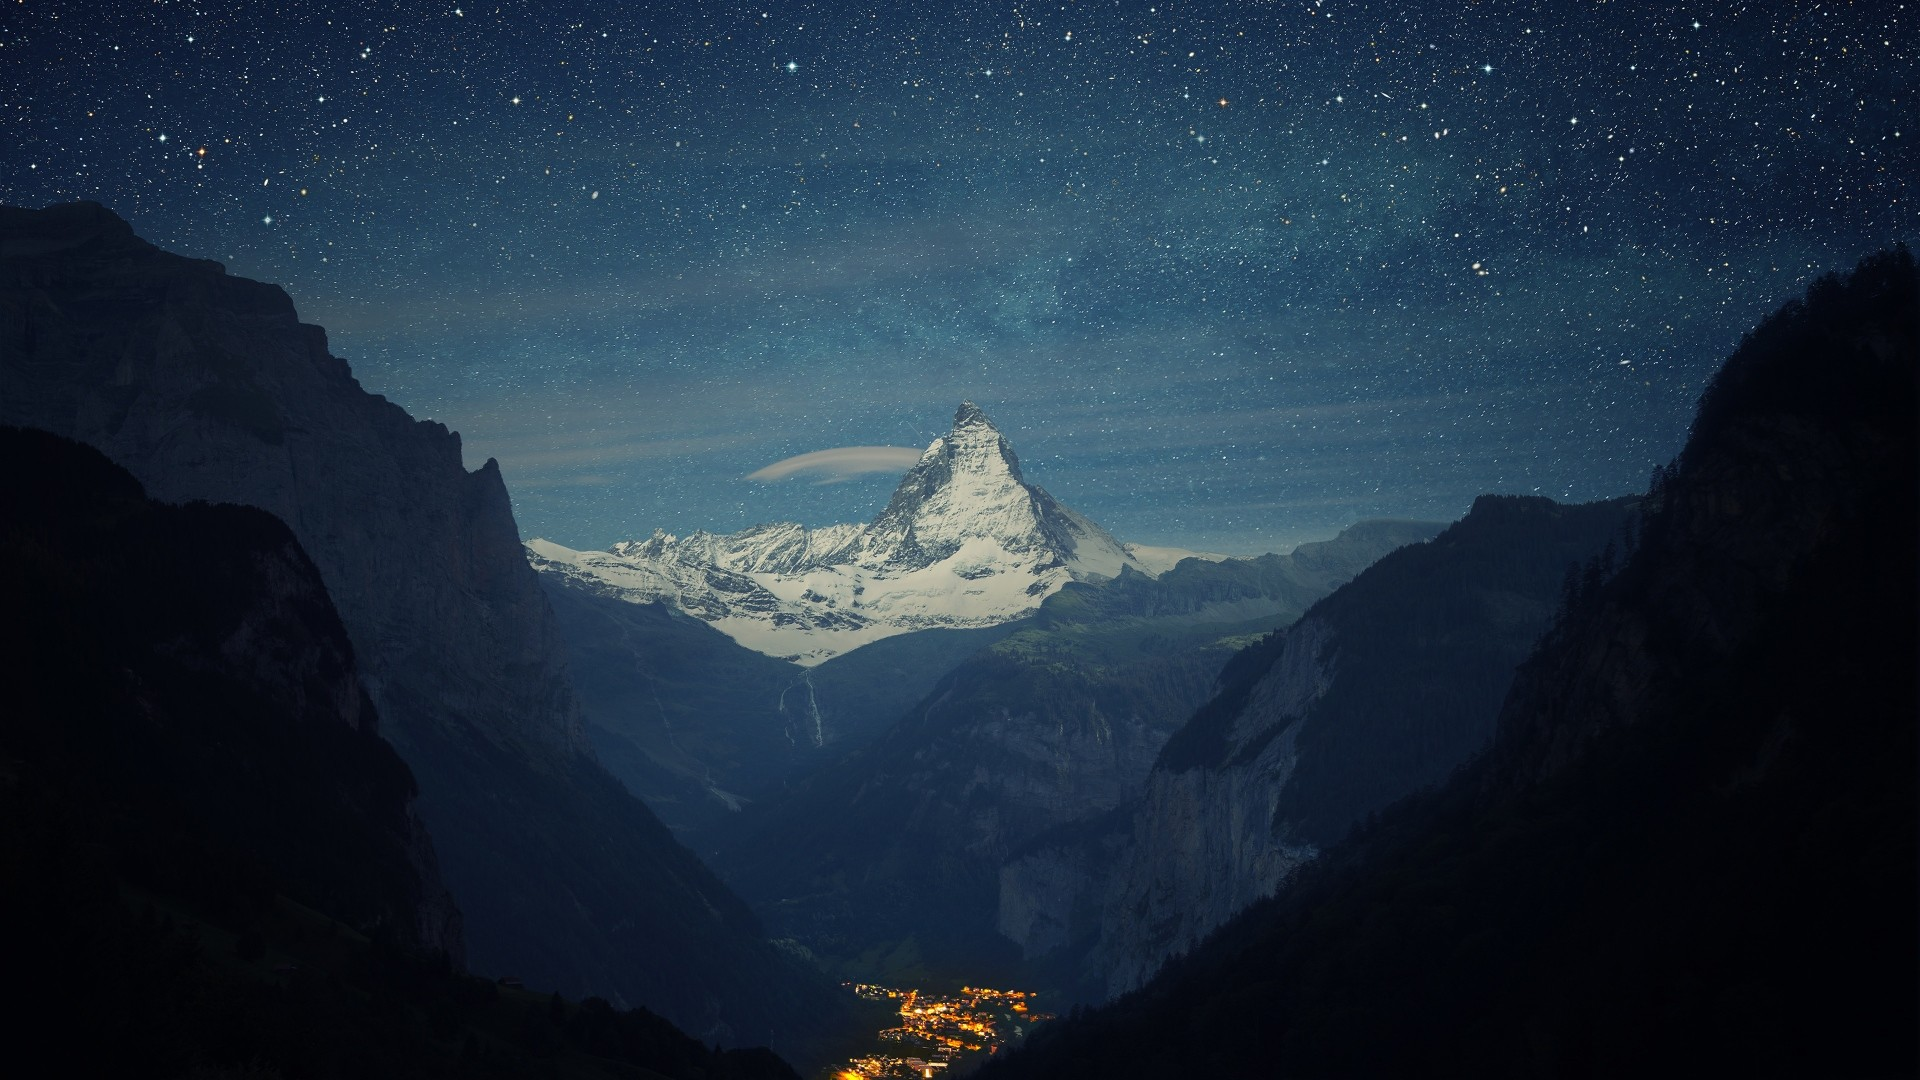 1920x1080 Preview wallpaper switzerland, alps, mountains, night, beautiful landscape